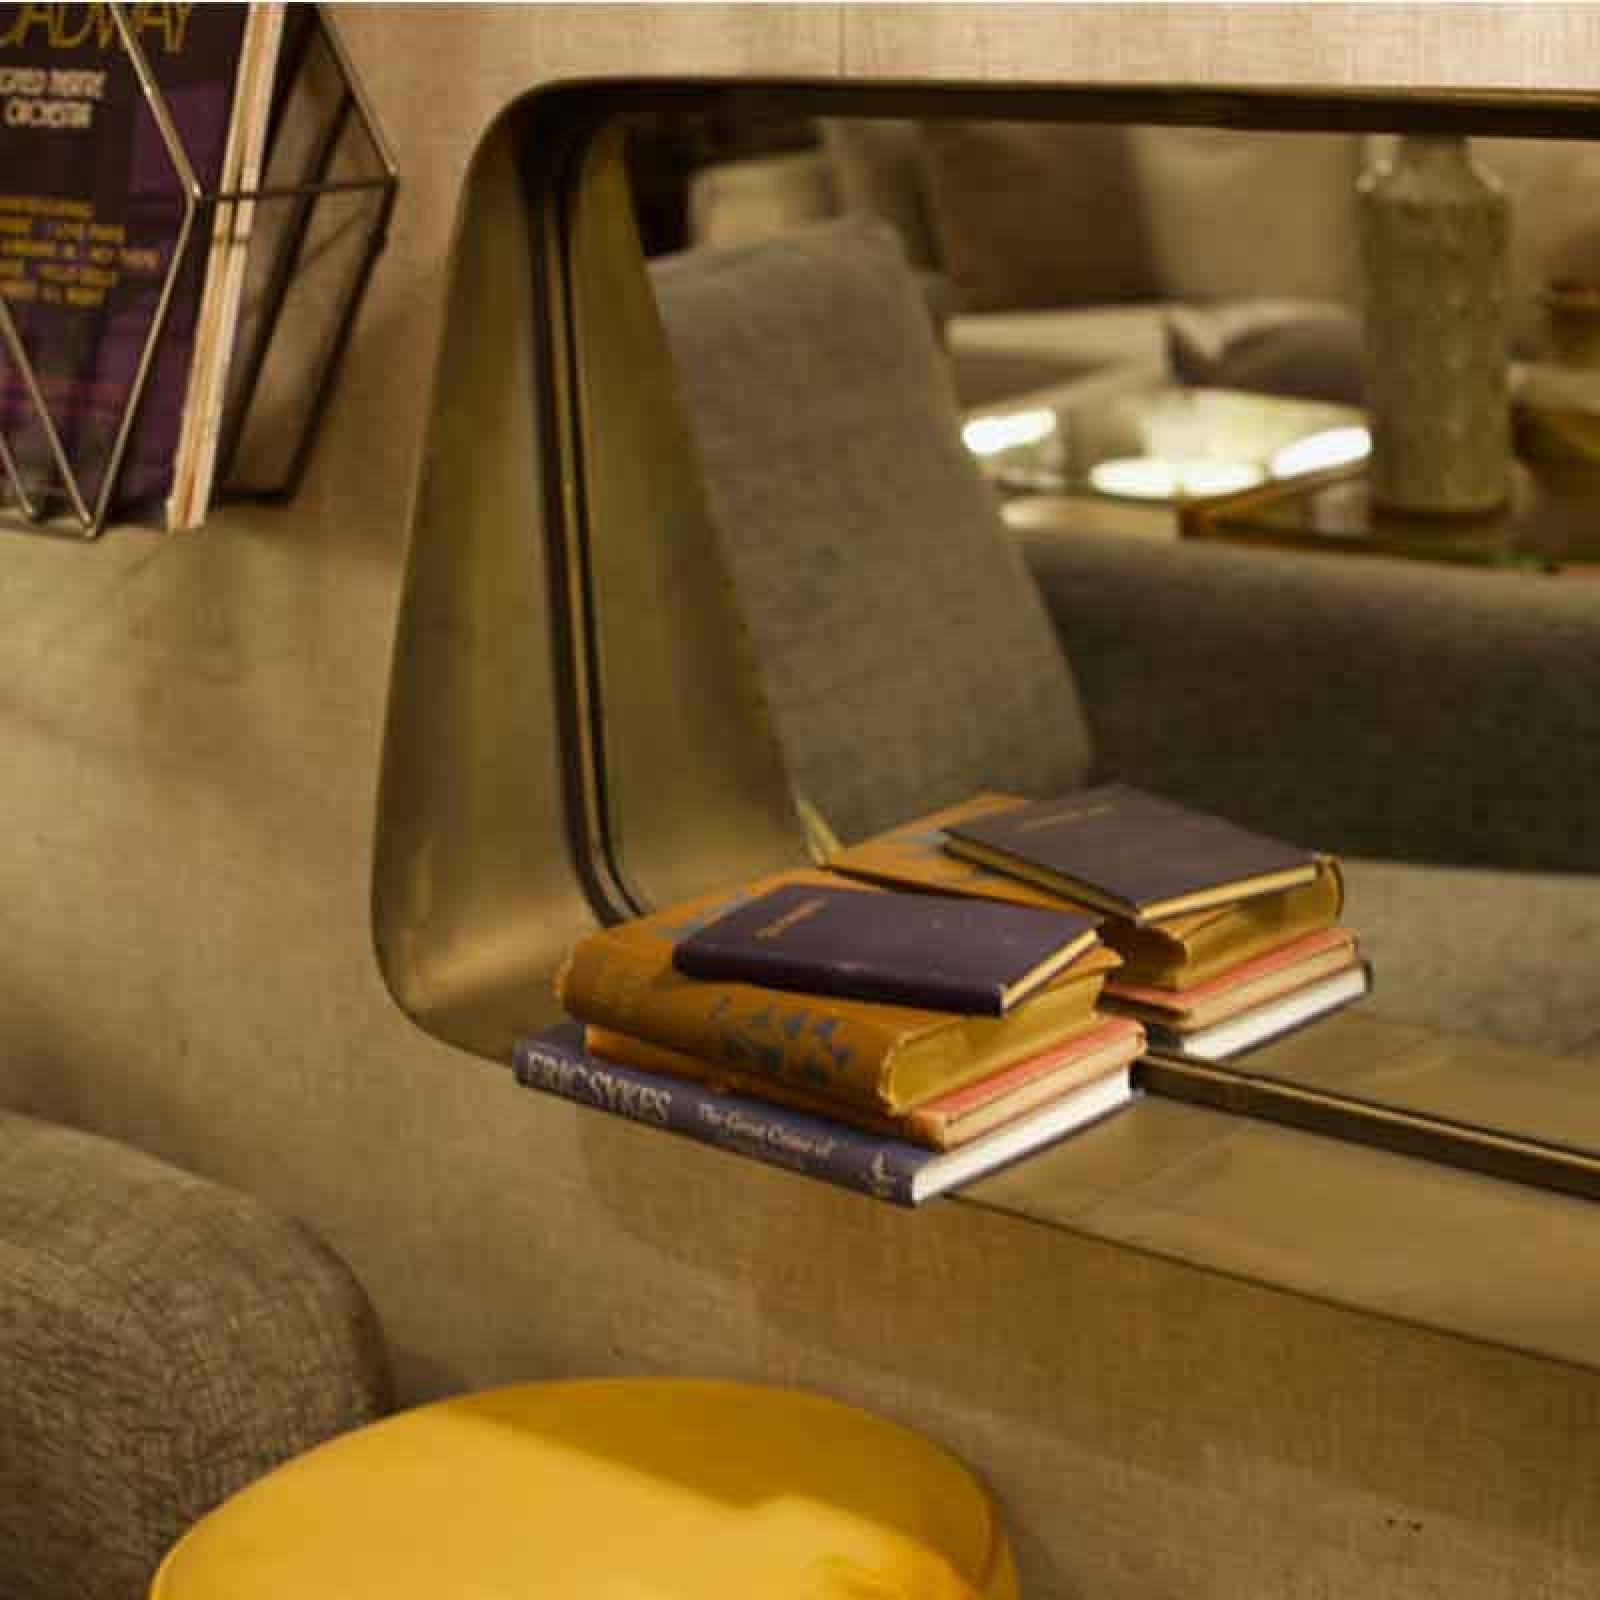 The Earl Landscape Mirror - Metal Sloping With Shelf thumbnails